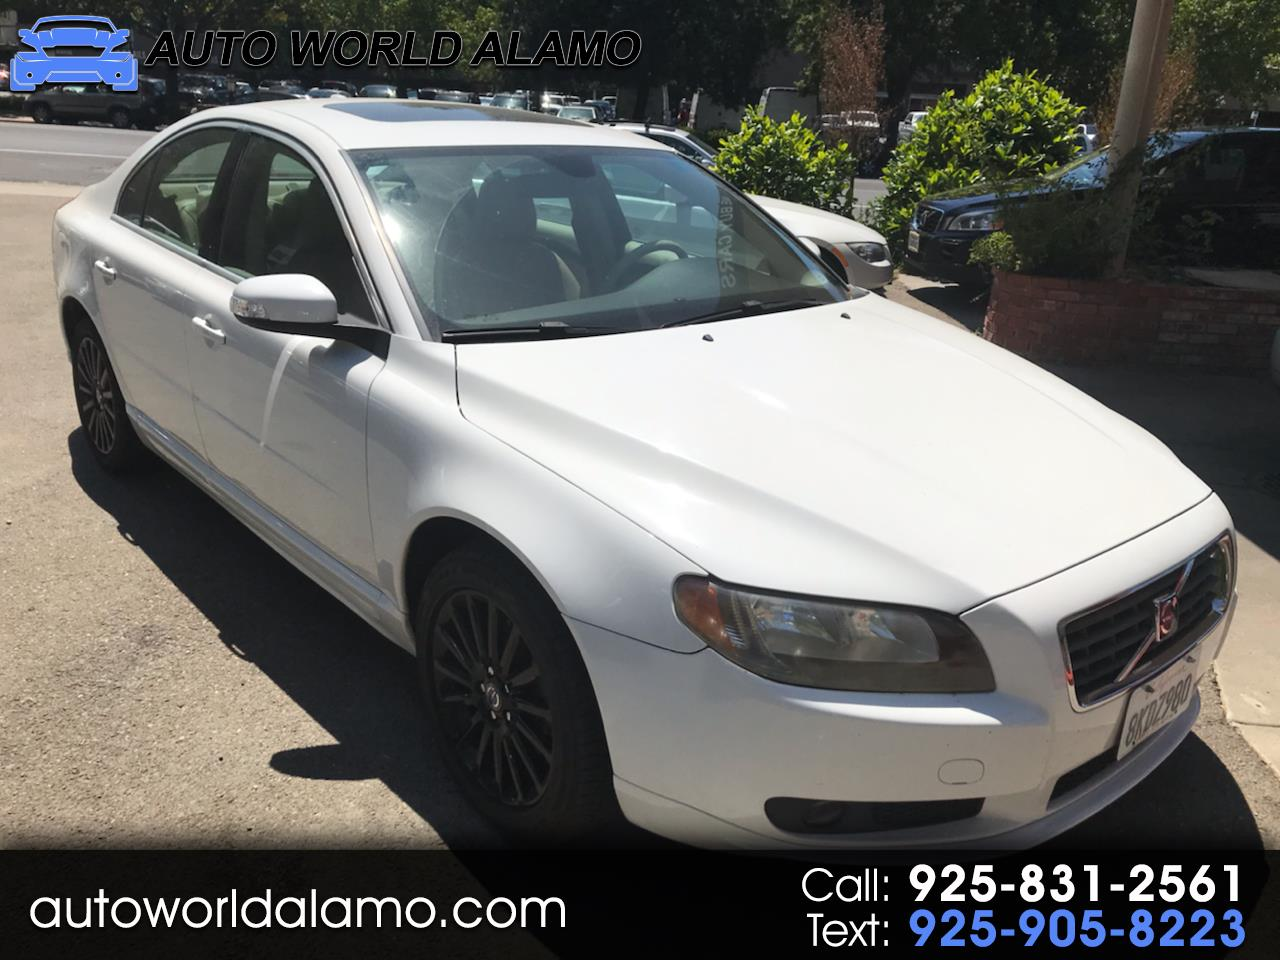 Volvo S80 4dr Sdn I6 FWD 2007